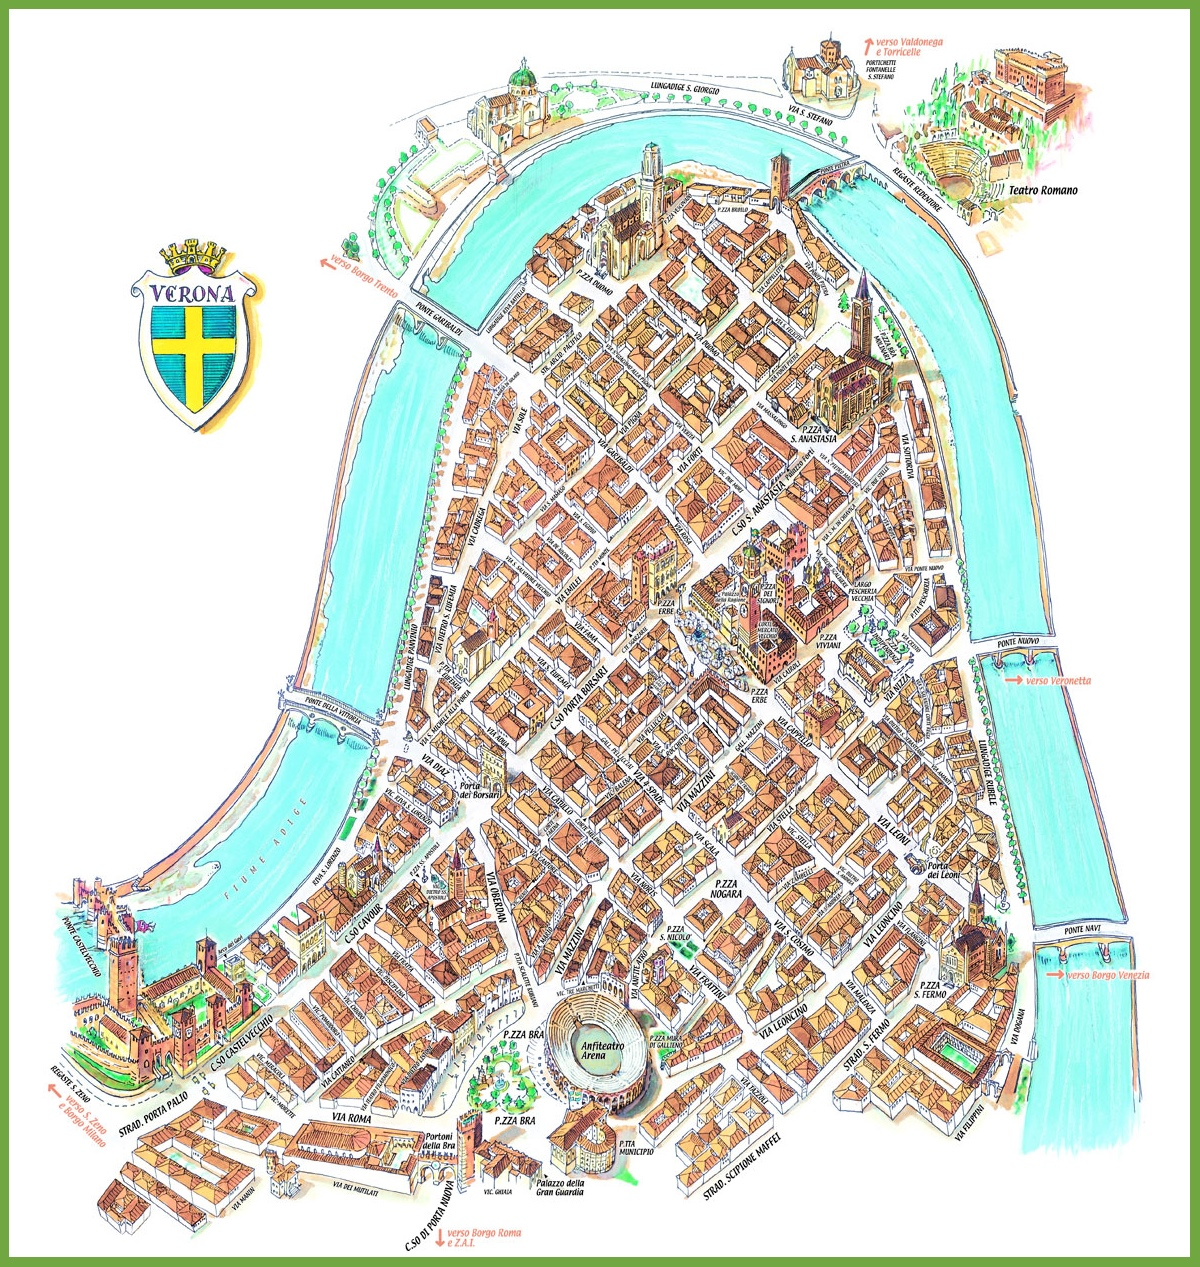 verona tourism map - photo#16